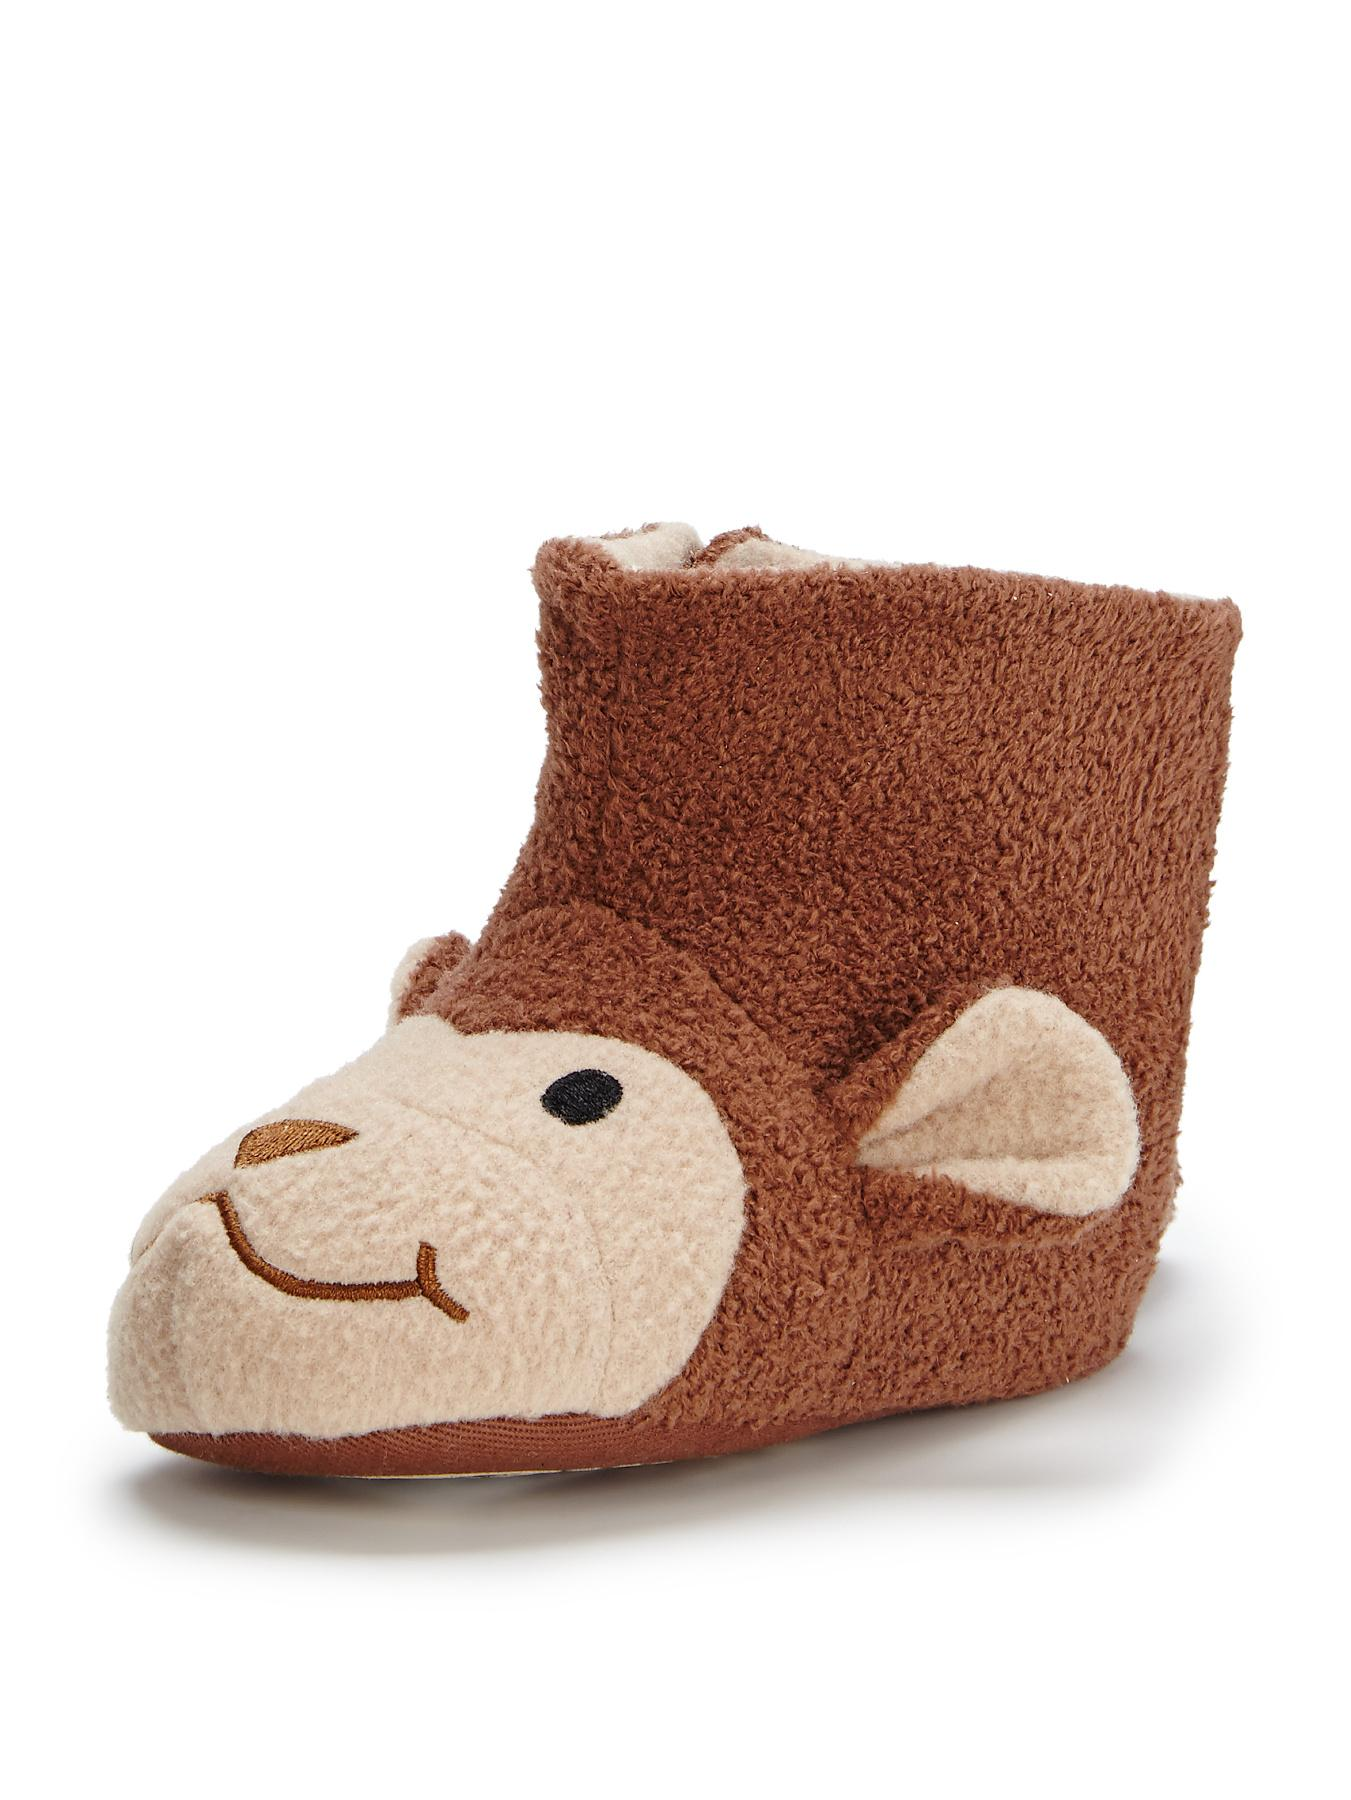 Monty Monky Slipper Pram Booties, Brown